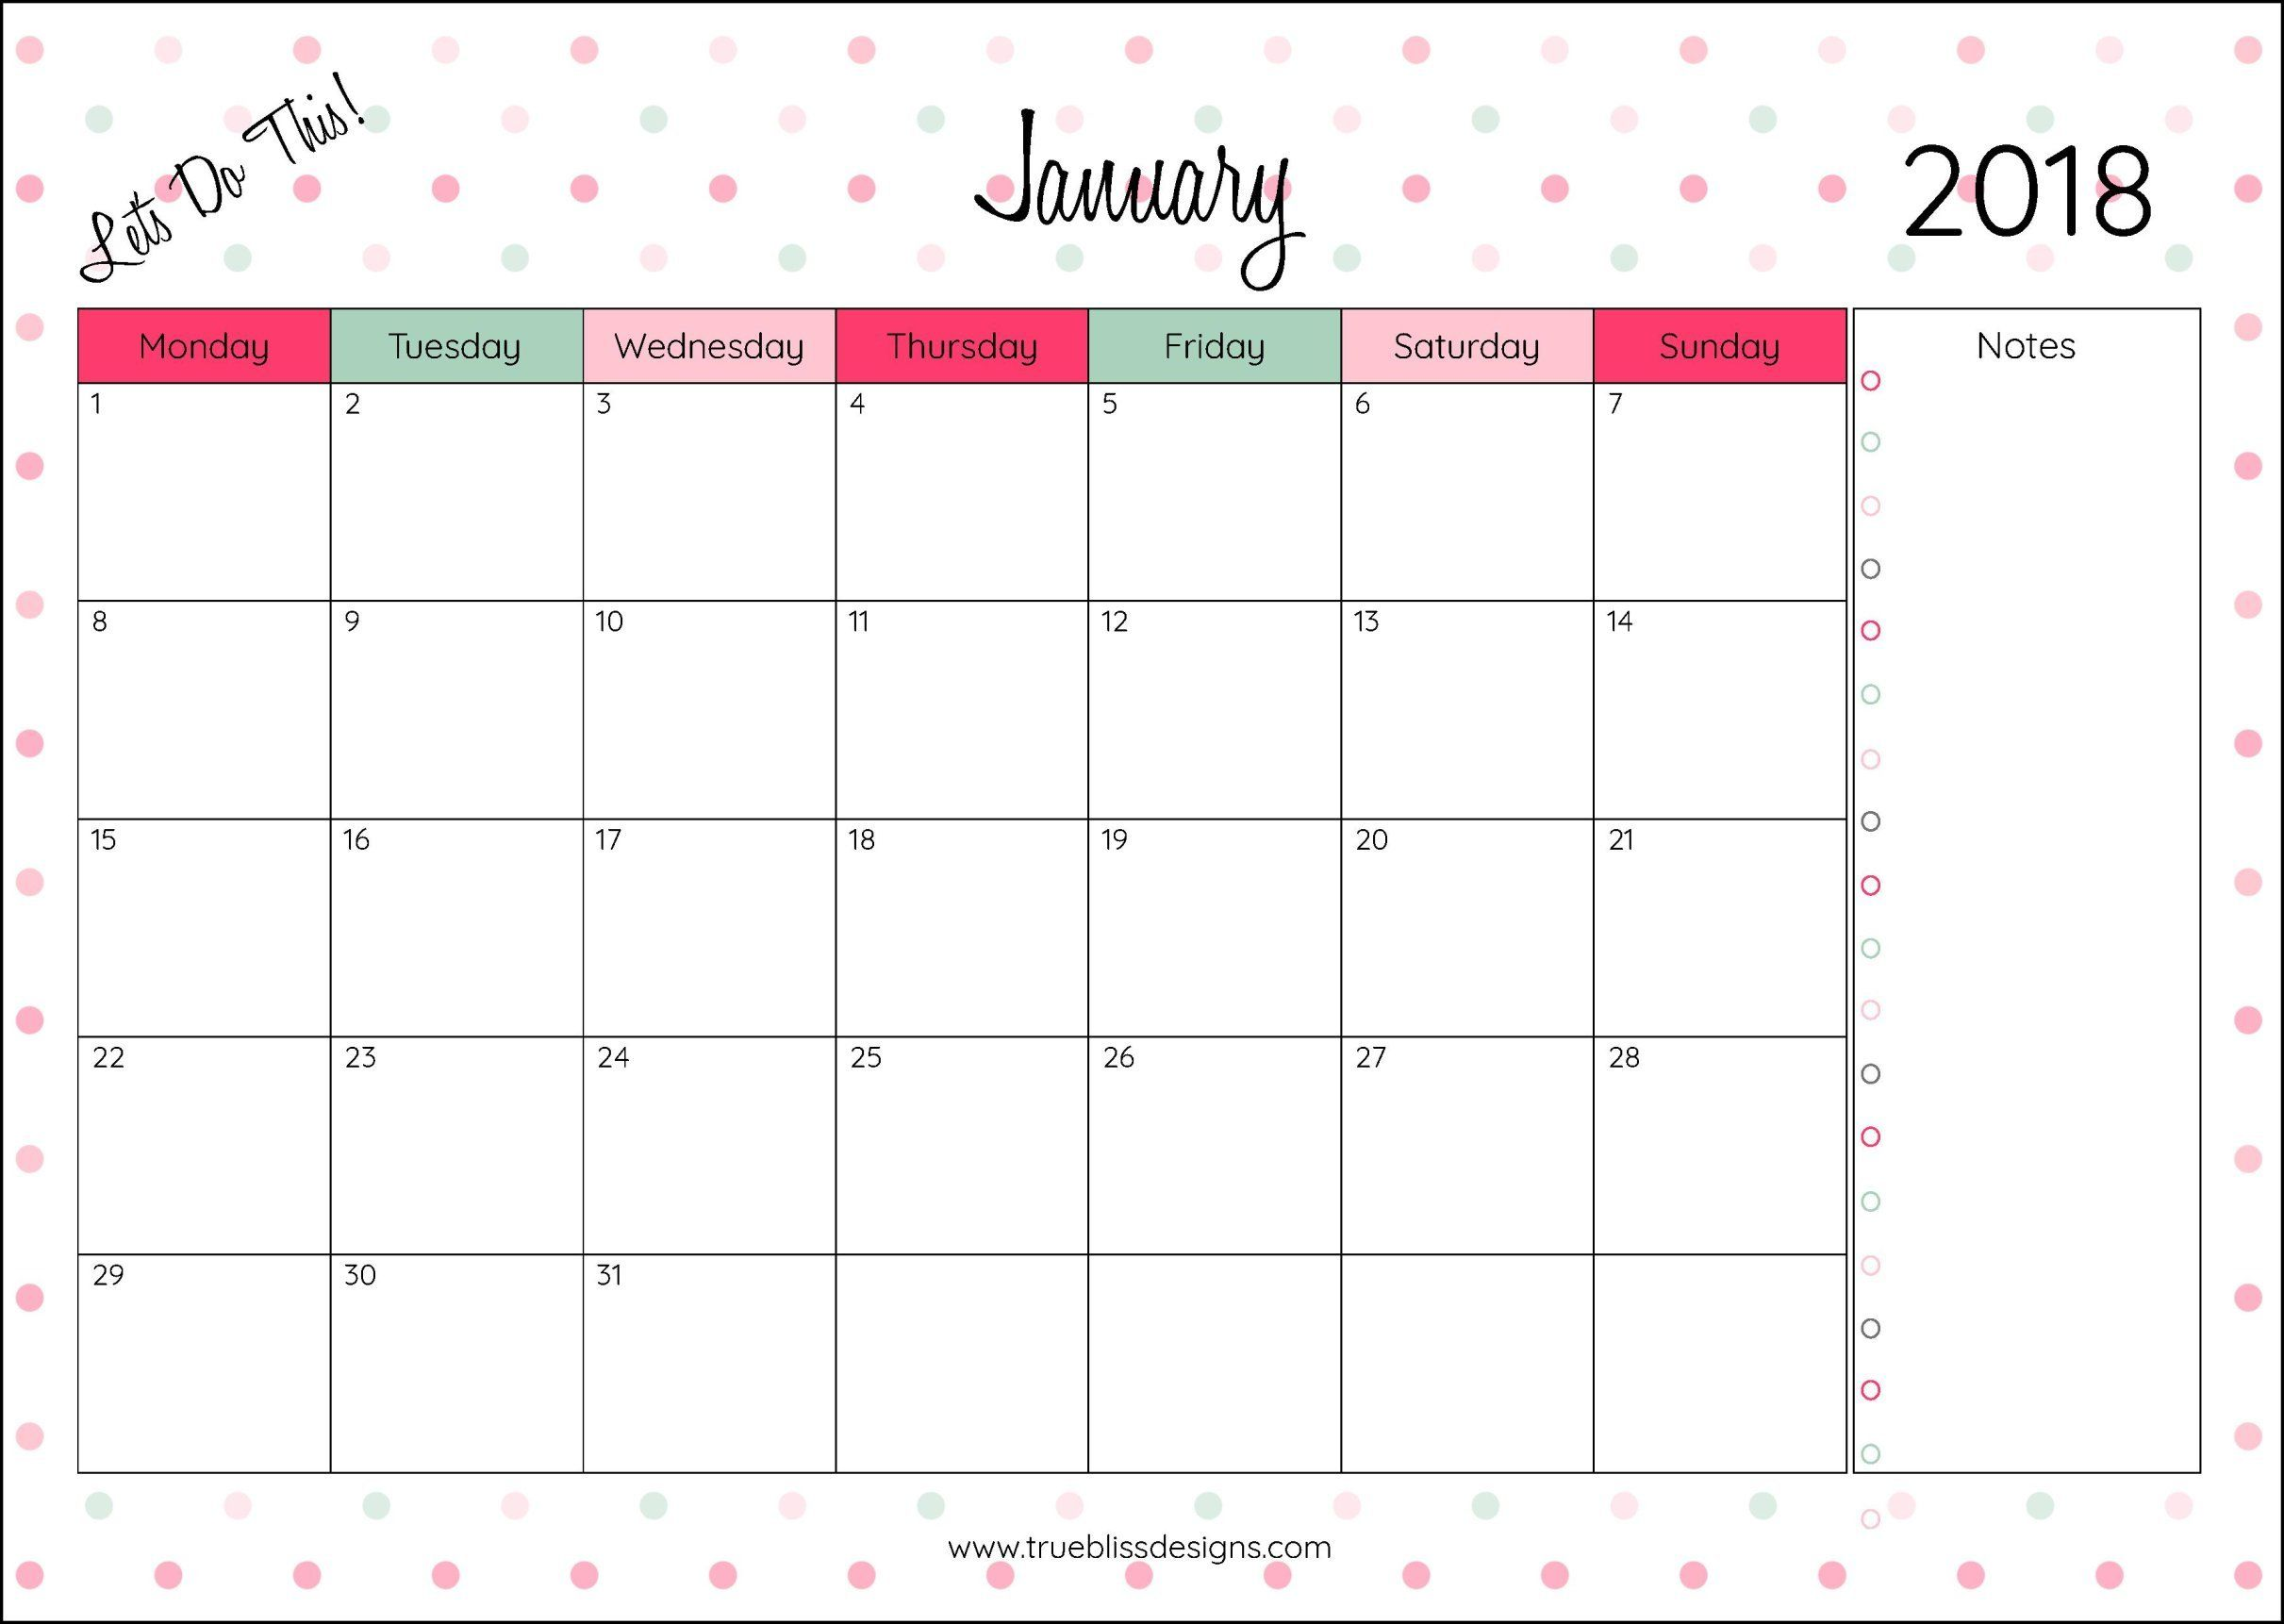 2018 Monthly Printable Calendar - Let\'s Do This | Pinterest